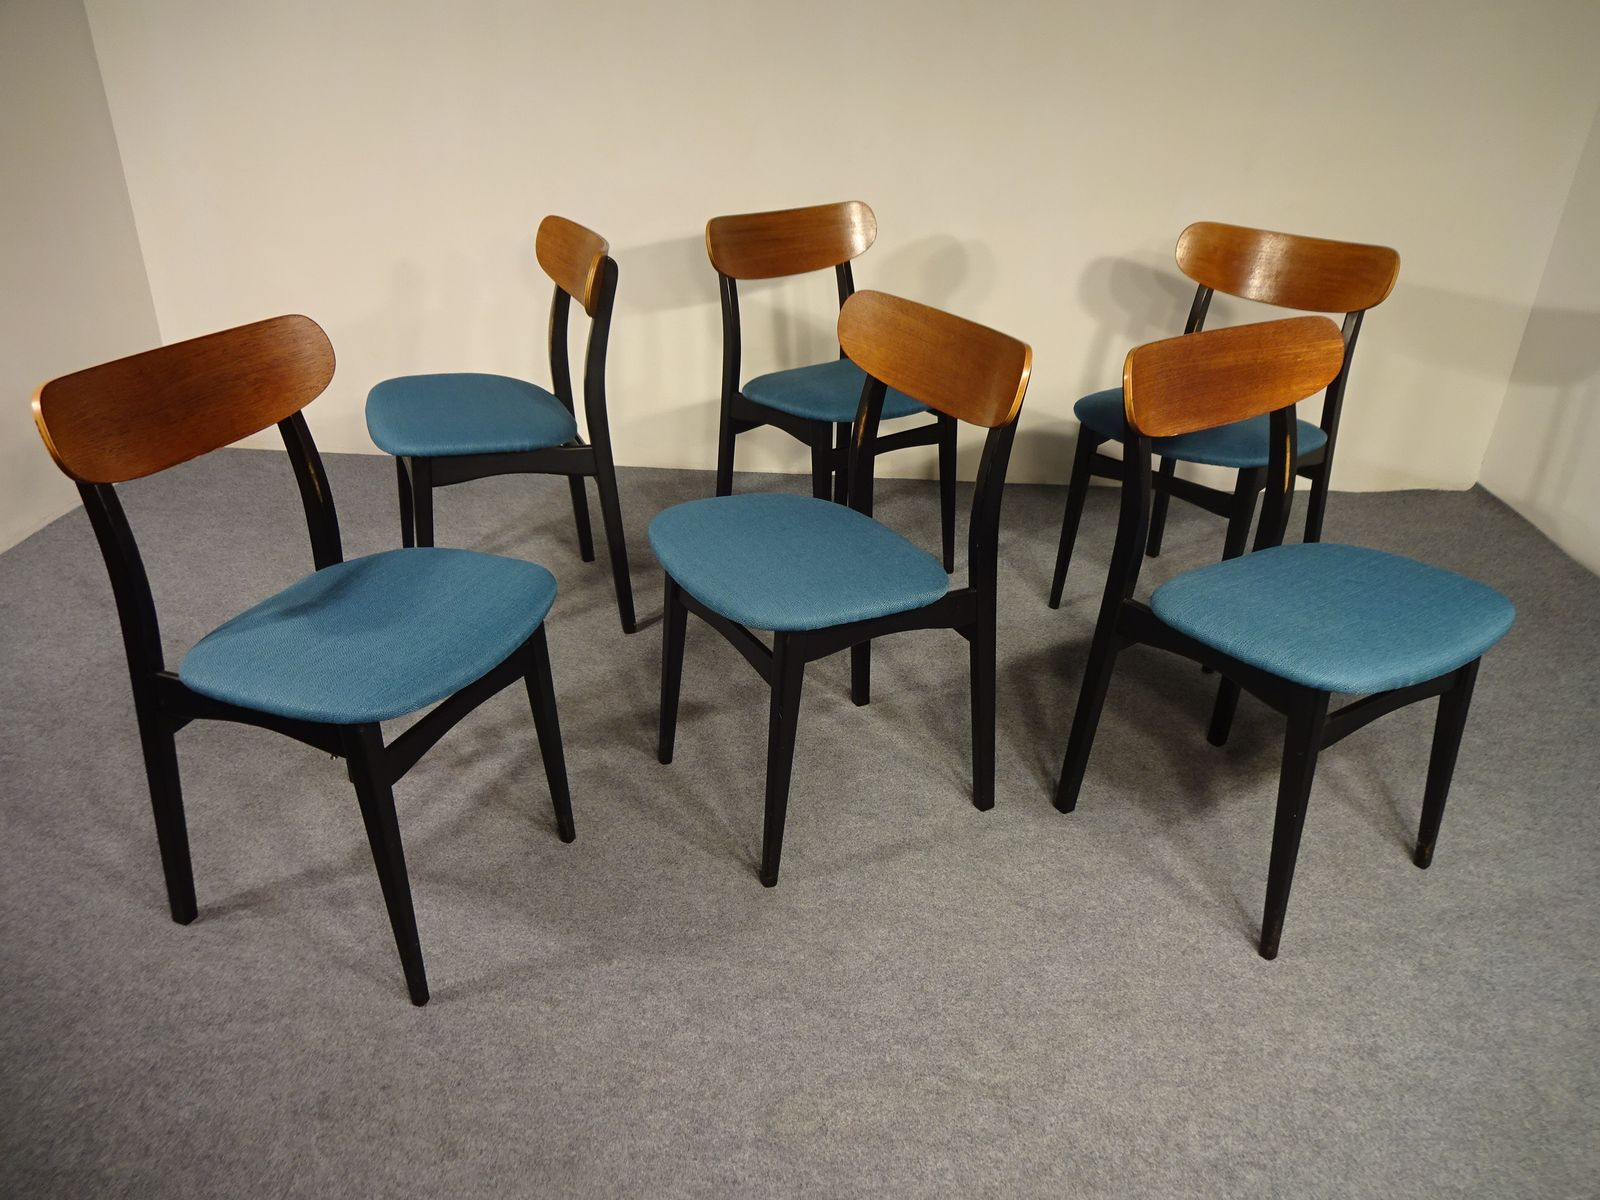 Dining chairs from asko 1960s set of 6 for sale at pamono for 6 kitchen chairs for sale